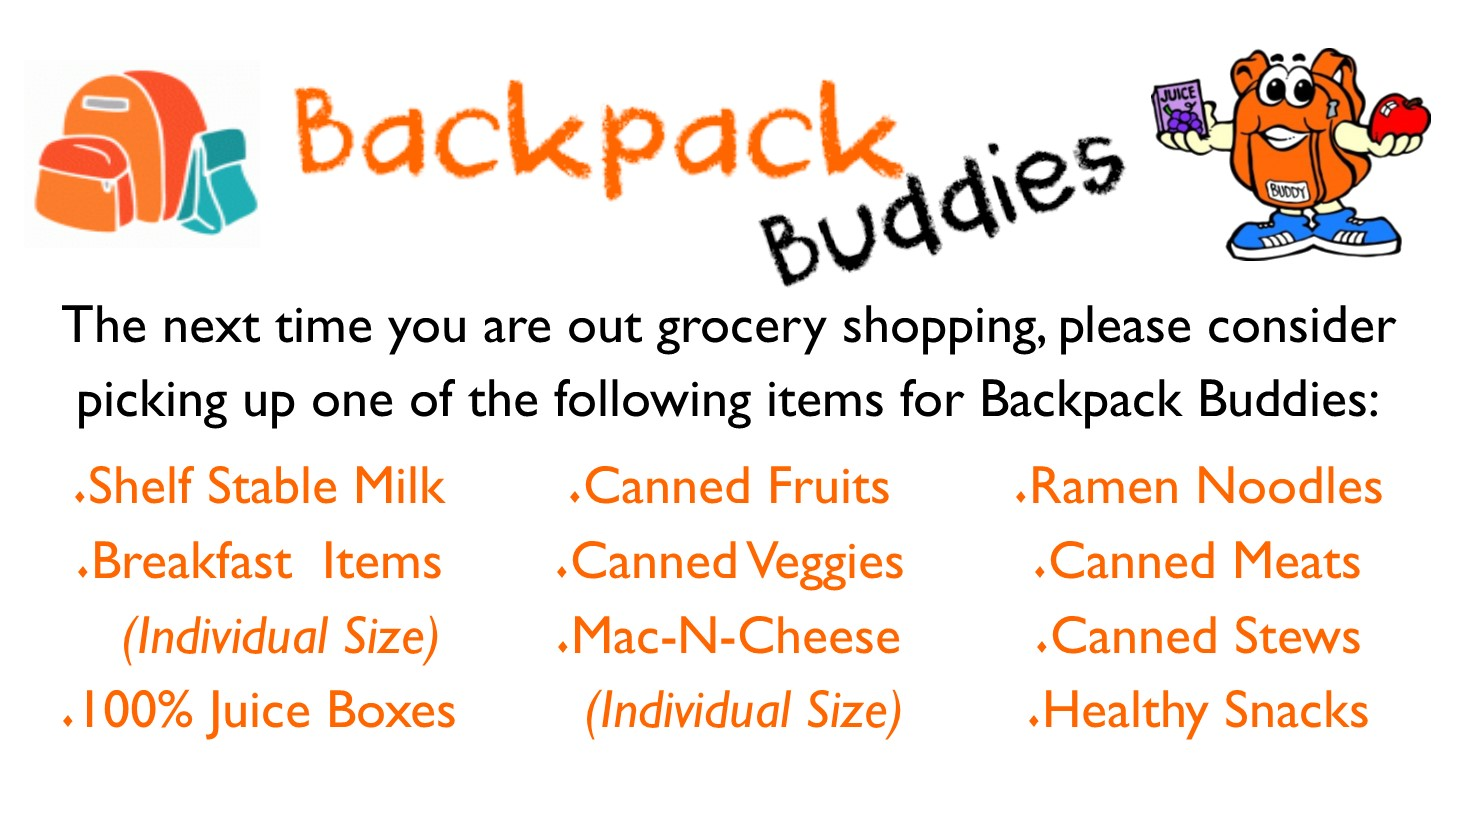 backpack buddies items